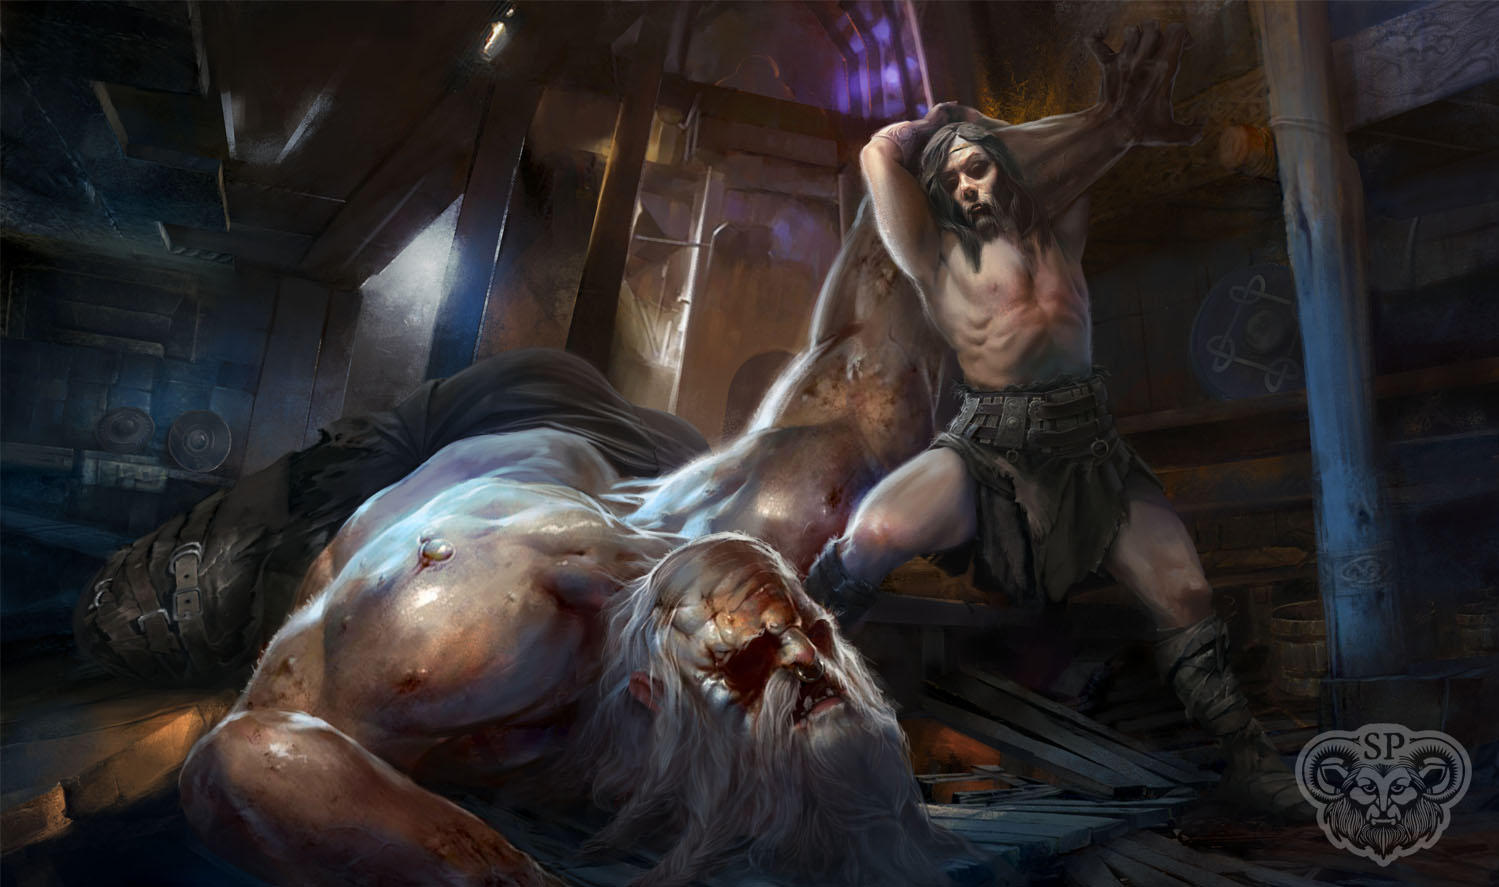 Art by Paolo Puggioni. Designed for Beowulf: A Mythosymphony by Satyr Productions.